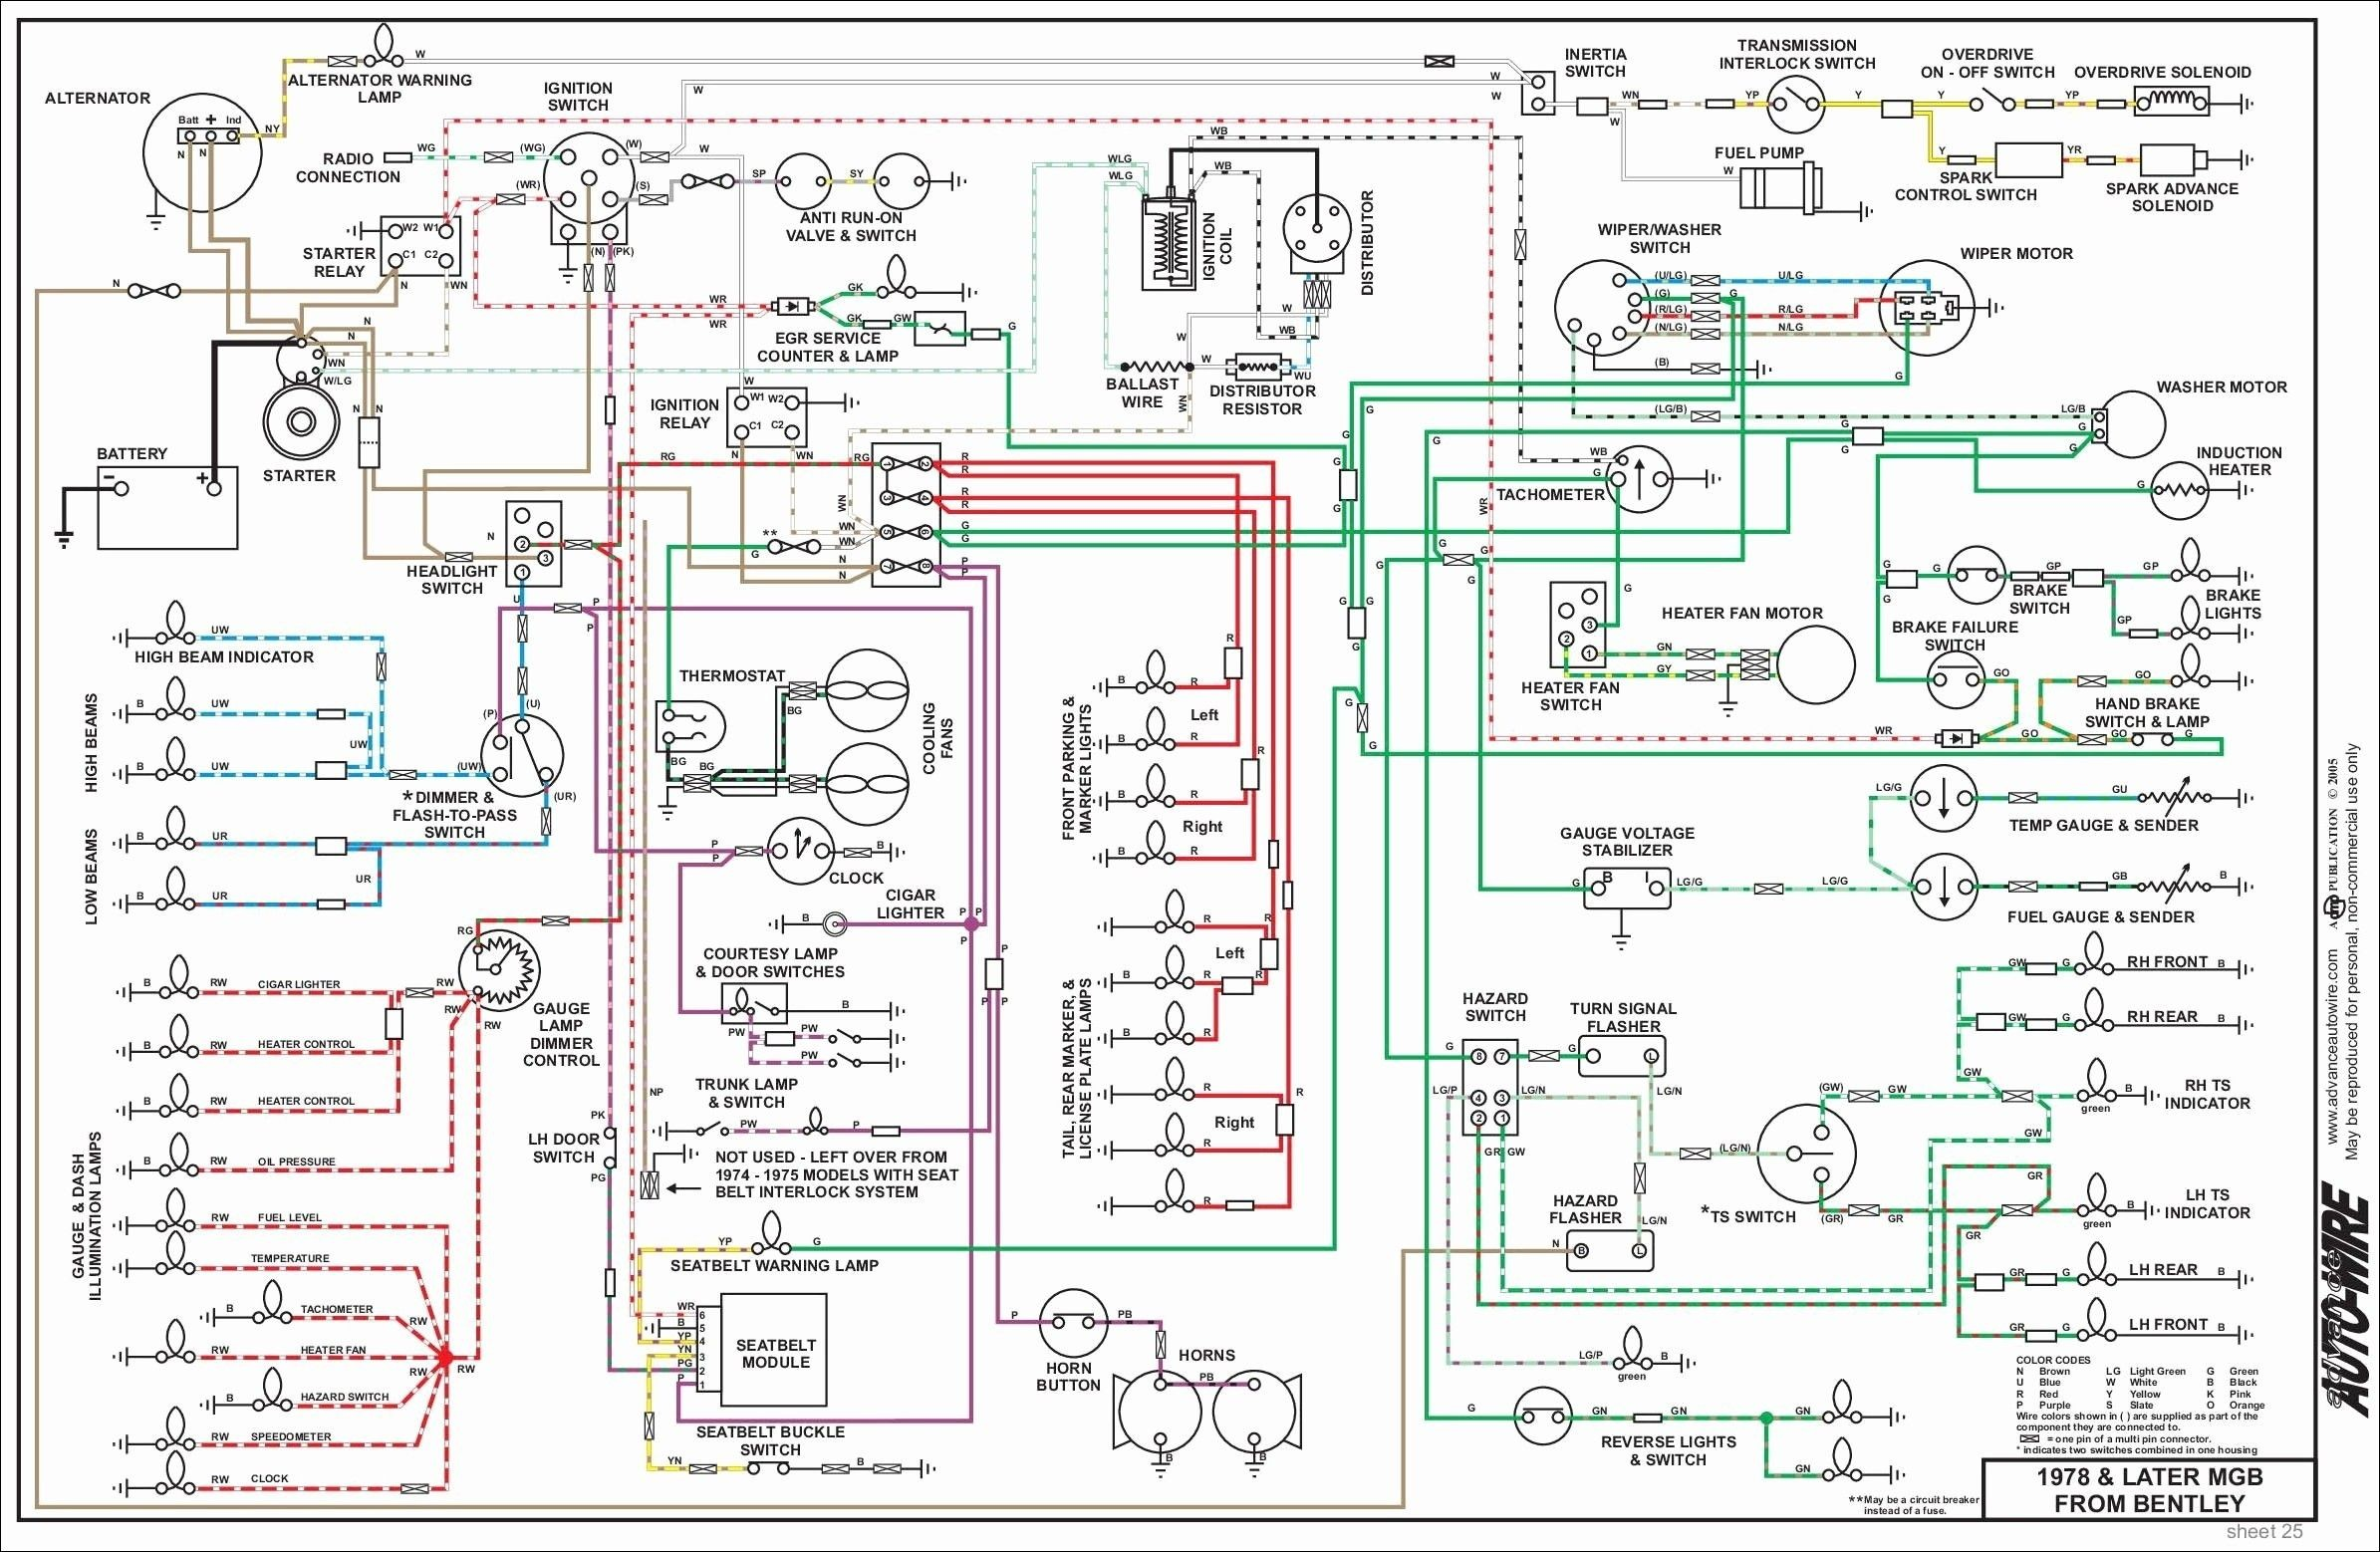 2002 Grand Cherokee Fan Schematic New Vans Aircraft Wiring Diagram Diagramsample Of 2002 Grand Cherokee Fan Schematic